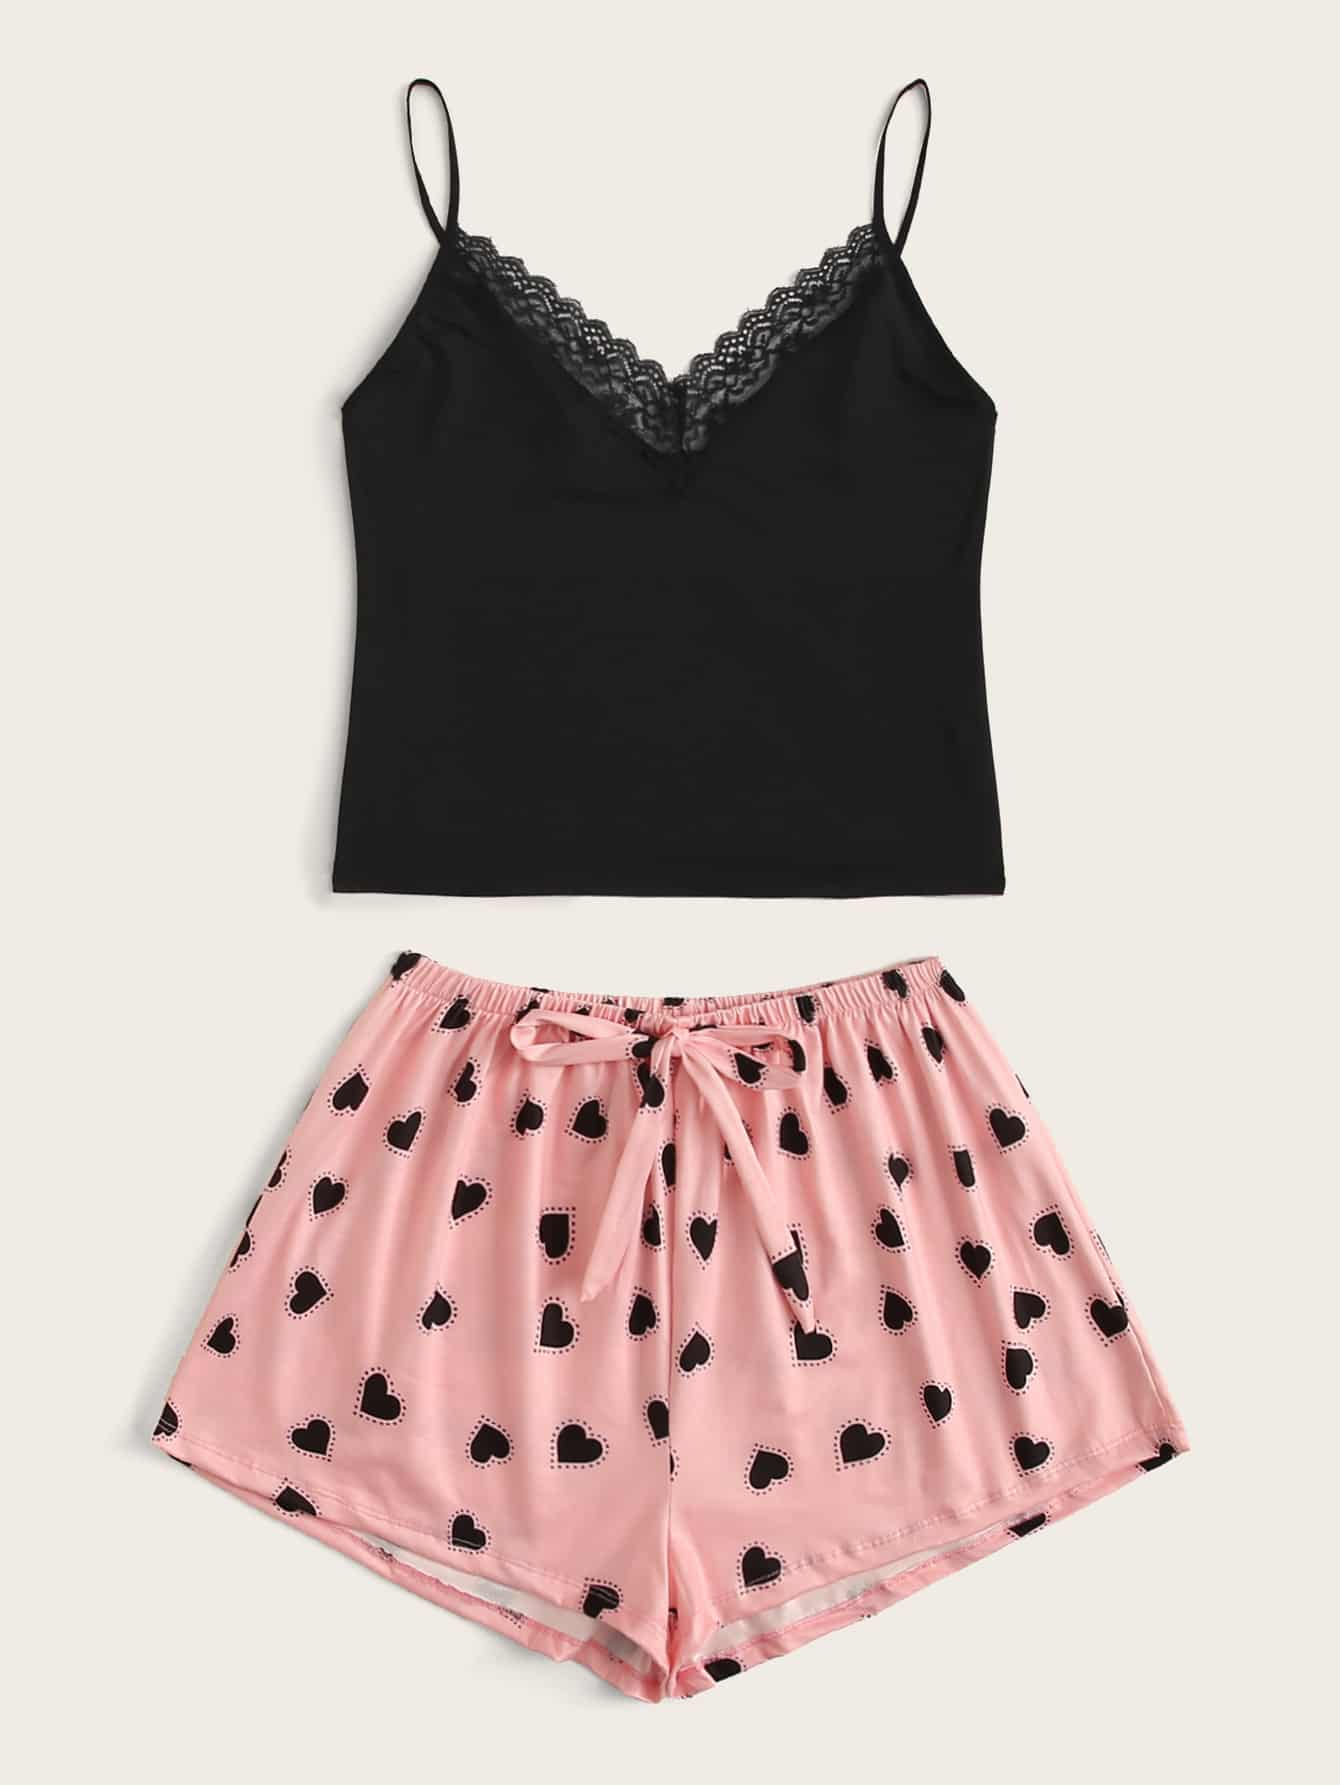 Lace Trim Cami Top With Heart Shorts PJ Set - FLJ CORPORATIONS